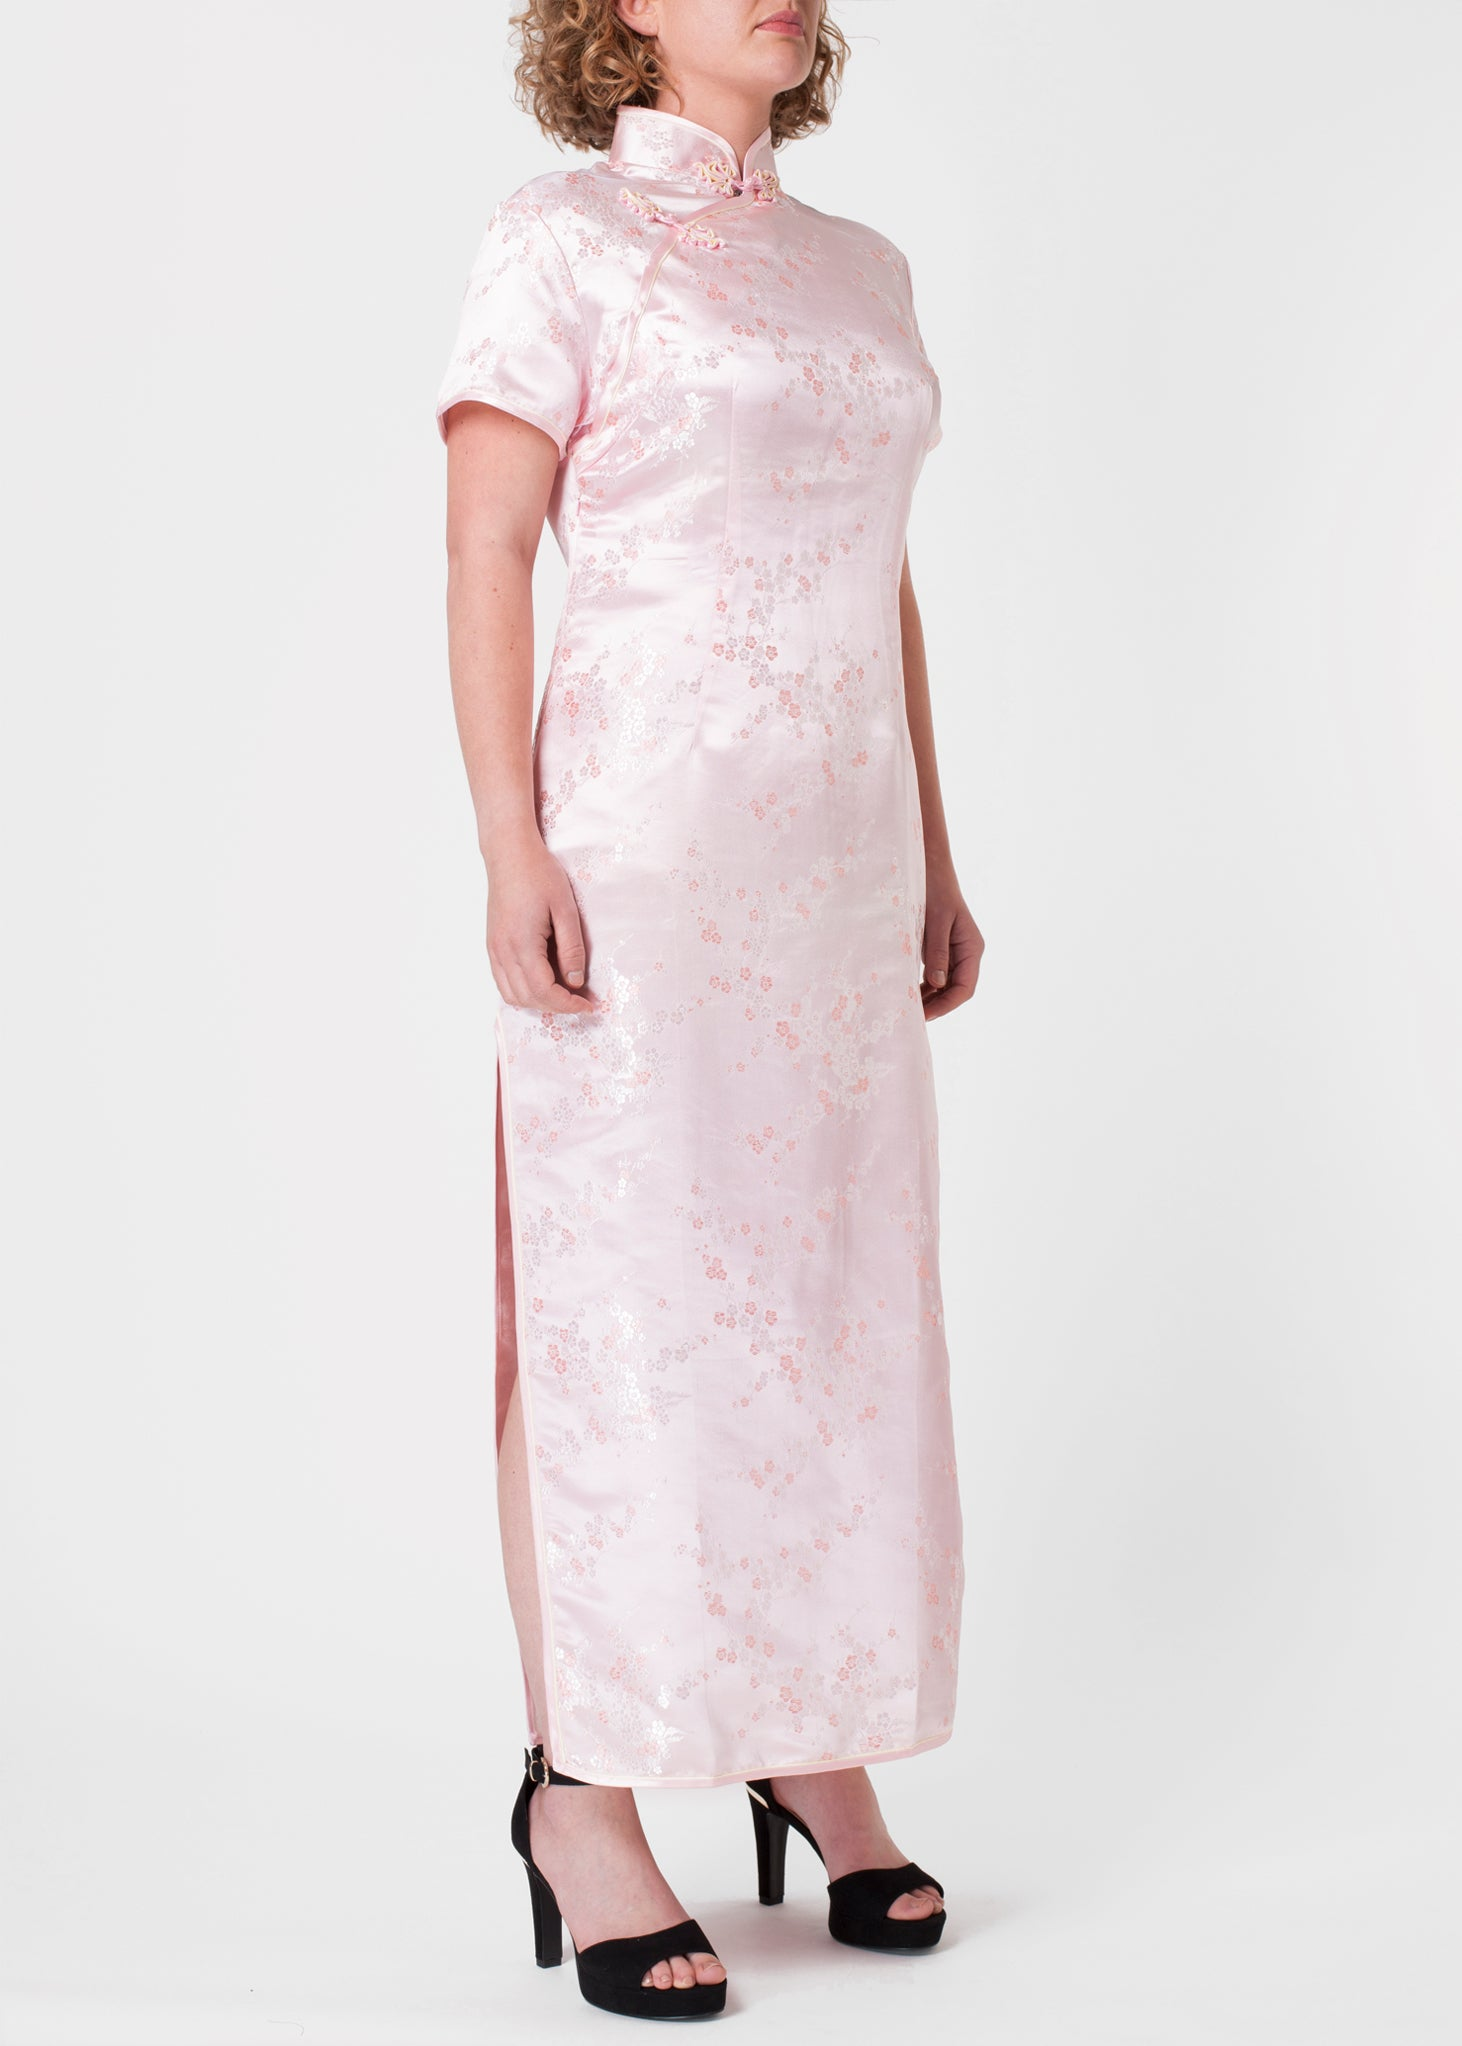 The Cheongsam or Qipao, is a feminine body-hugging dress with distinctive Chinese features of mandarin collar, side splits and hand stitched flower and knot frog fastenings. Manufactured in authentic high quality silk/rayon brocade in a beautiful subtle pink cherry blossom design - a symbol of female beauty and love